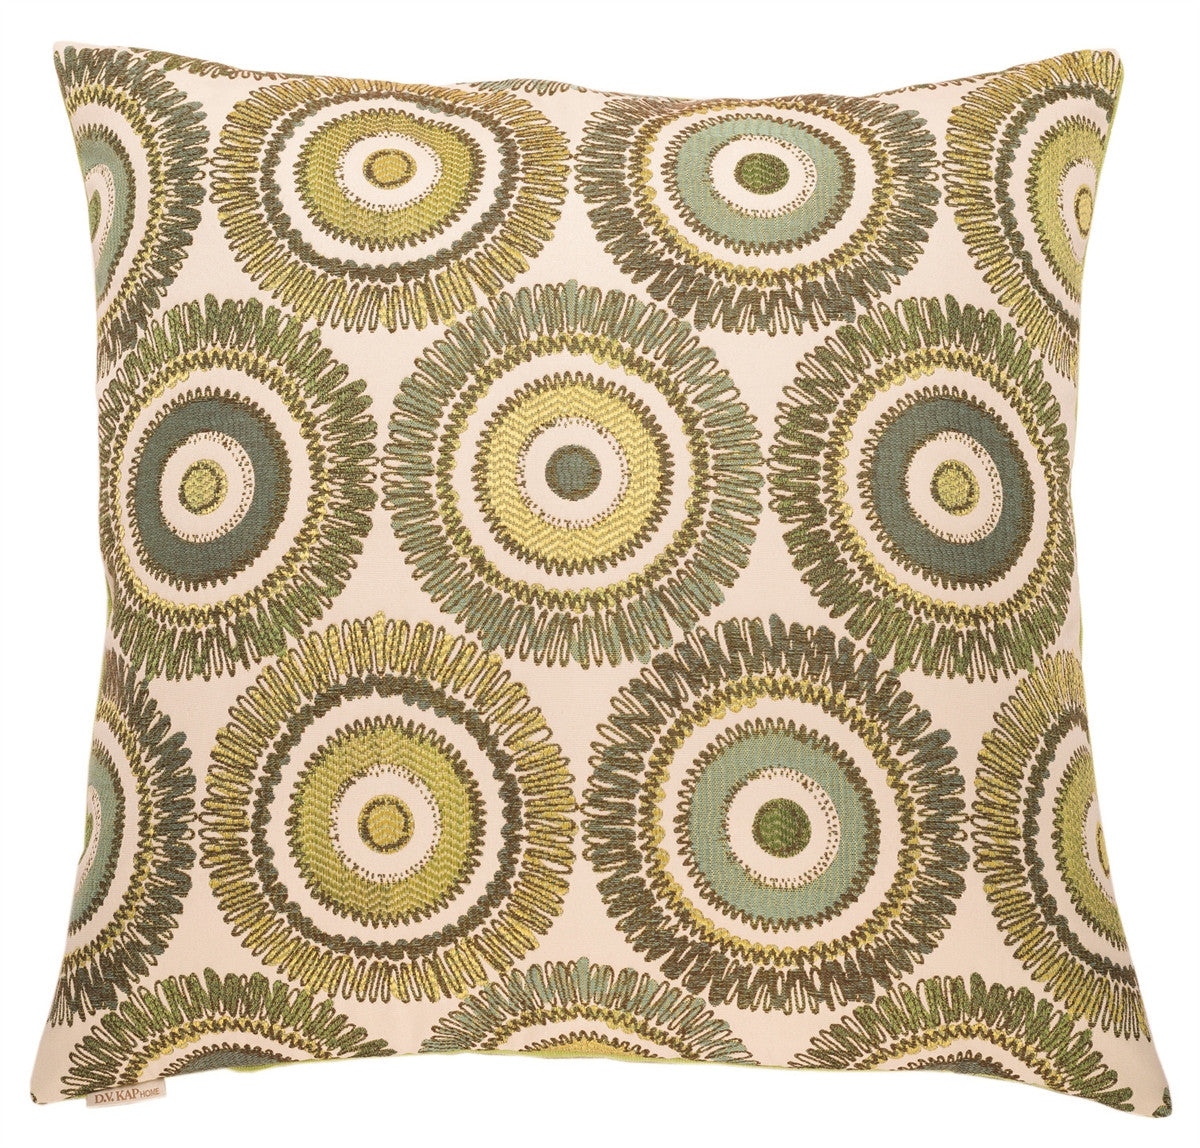 DV Kap Home - Squiggs Toss Pillow